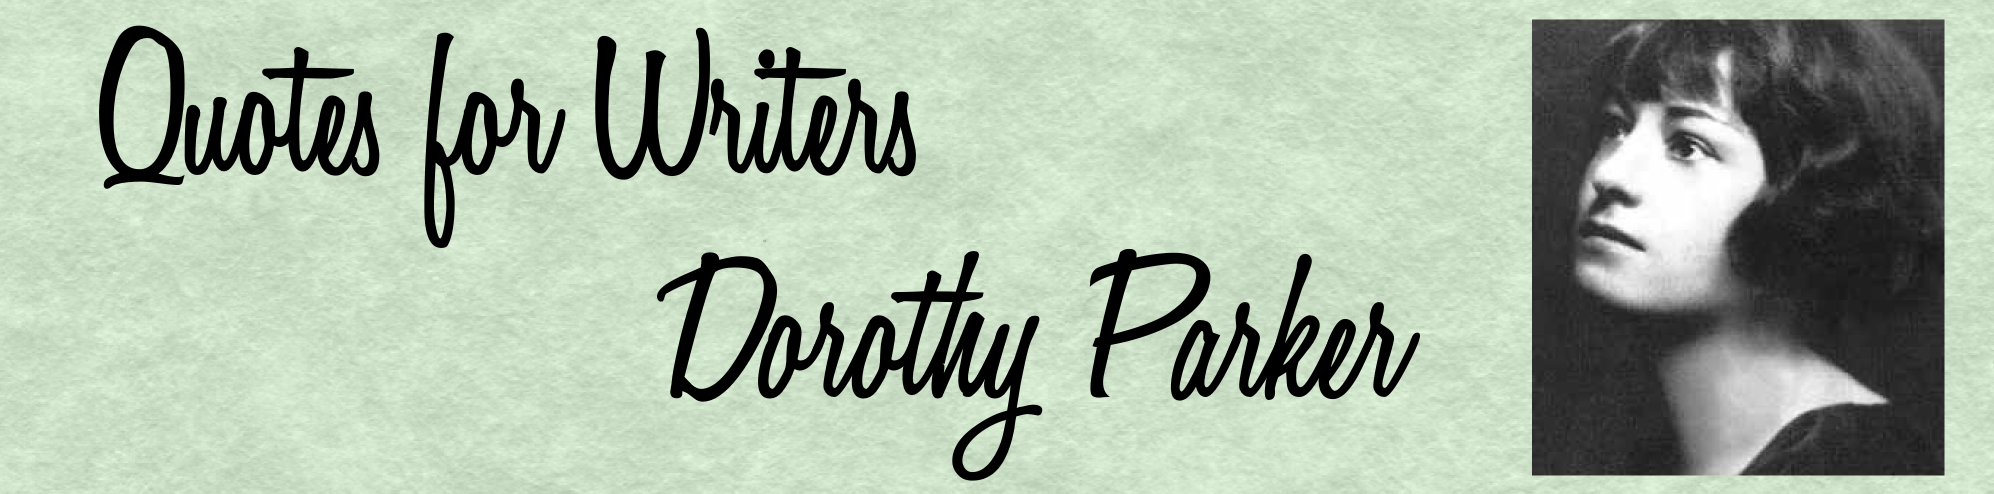 dorothy parker writing style